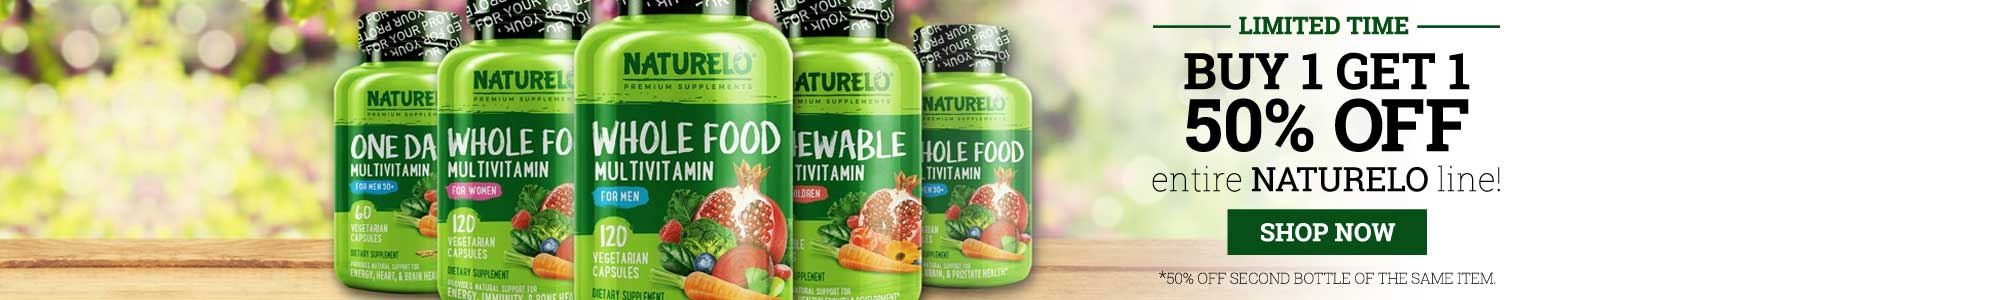 Naturelo - Vitamins and supplements